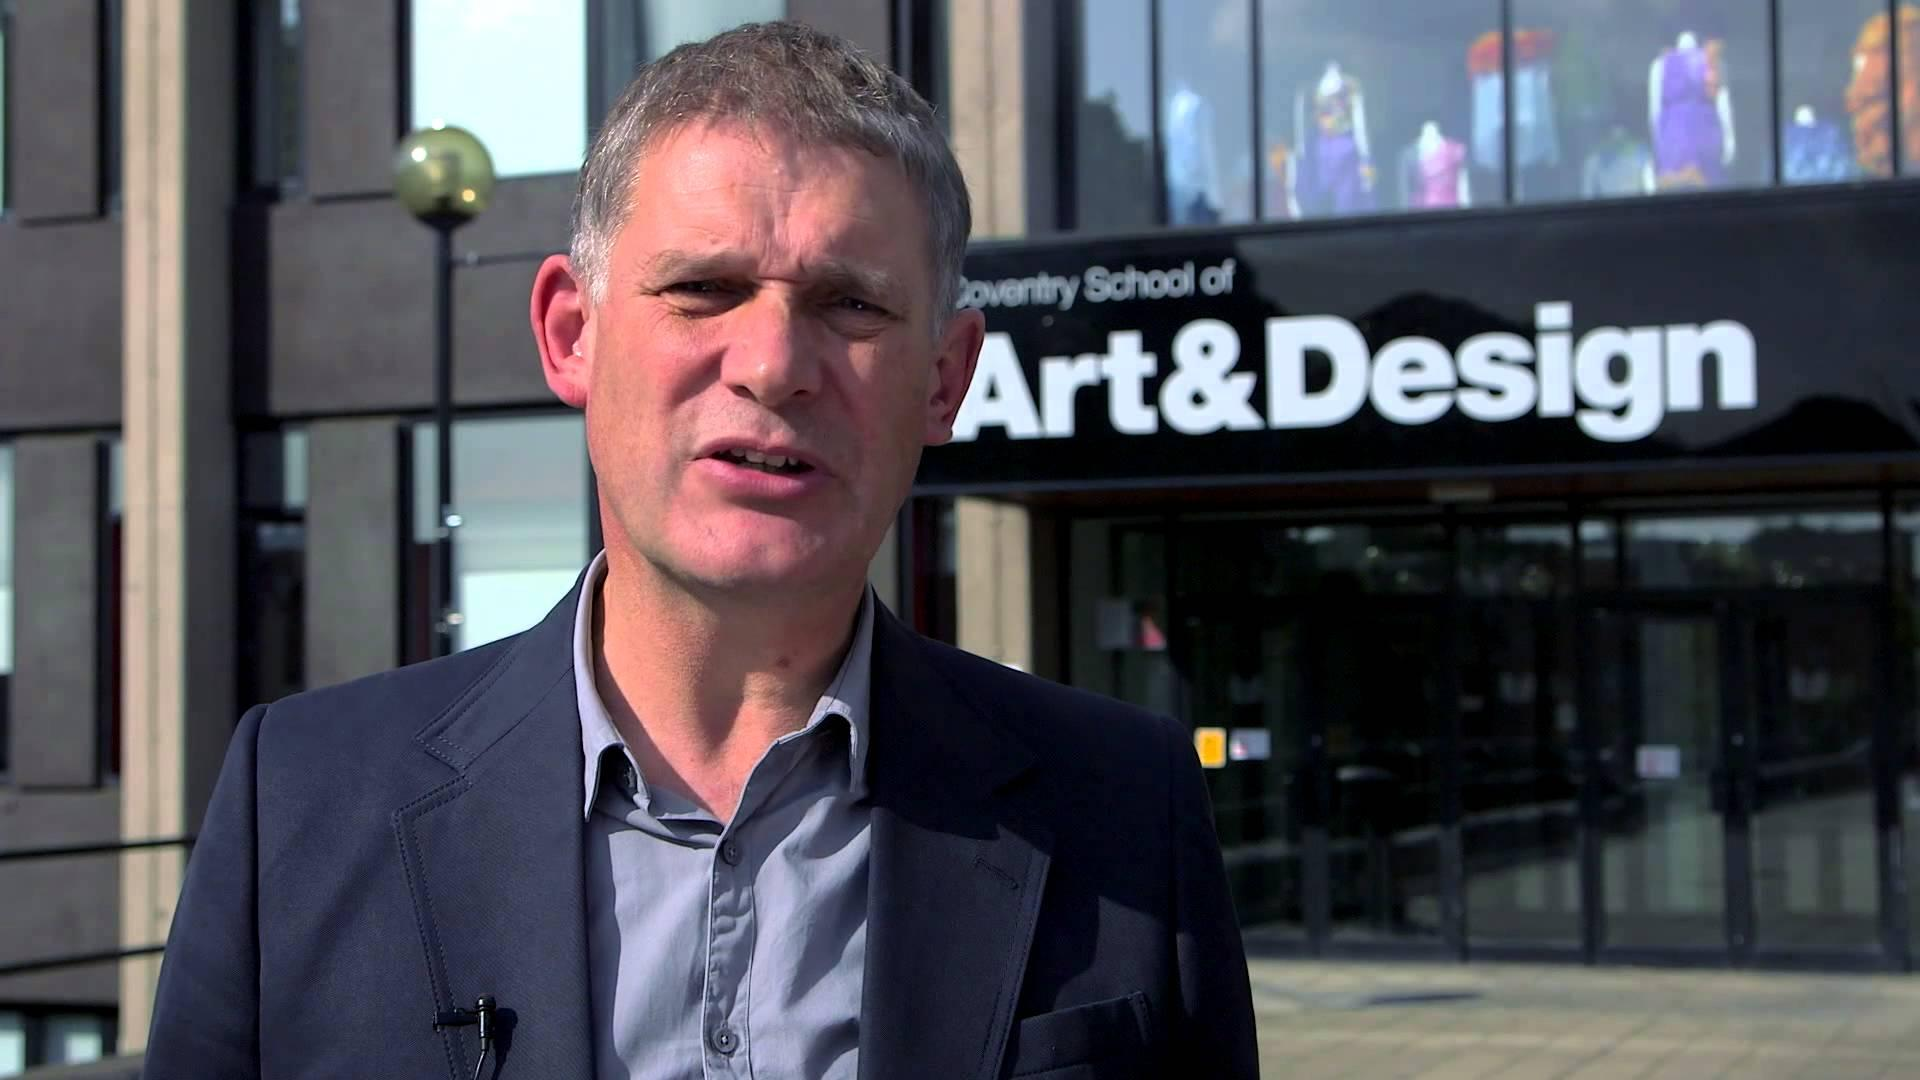 Postgraduate Study: Coventry School of Art and Design